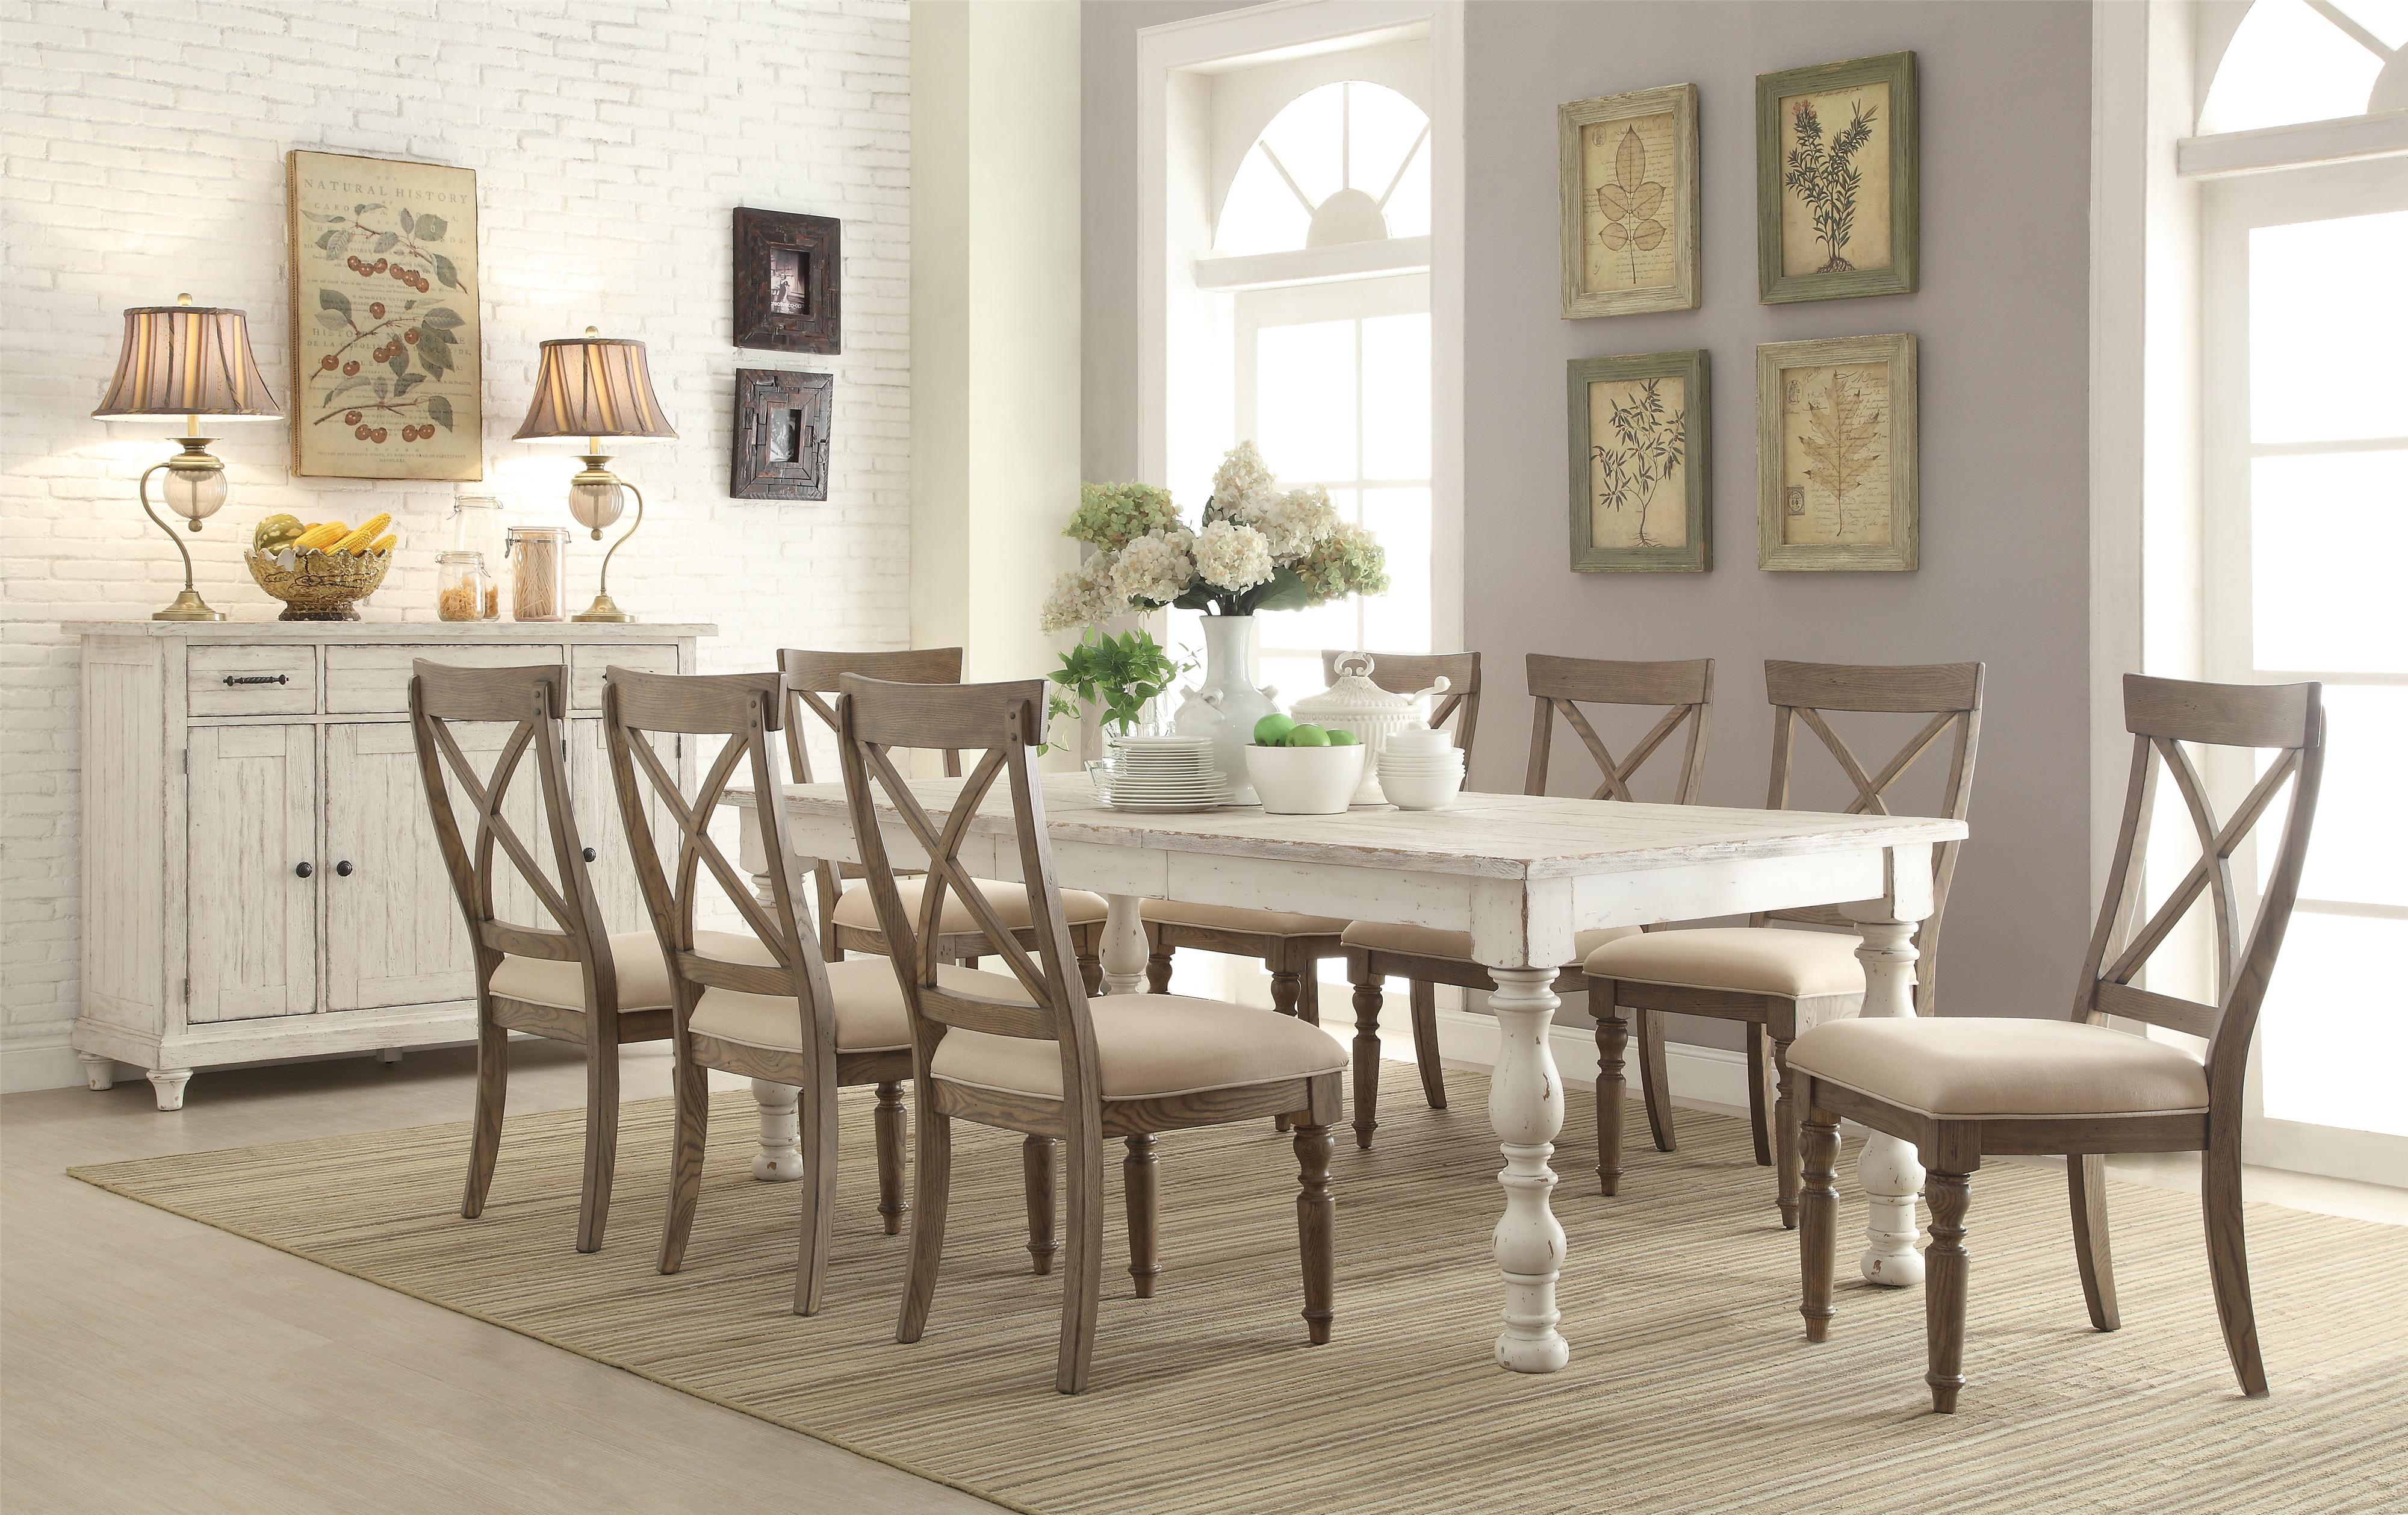 Aberdeen Dining Room Group by Riverside Furniture at Mueller Furniture